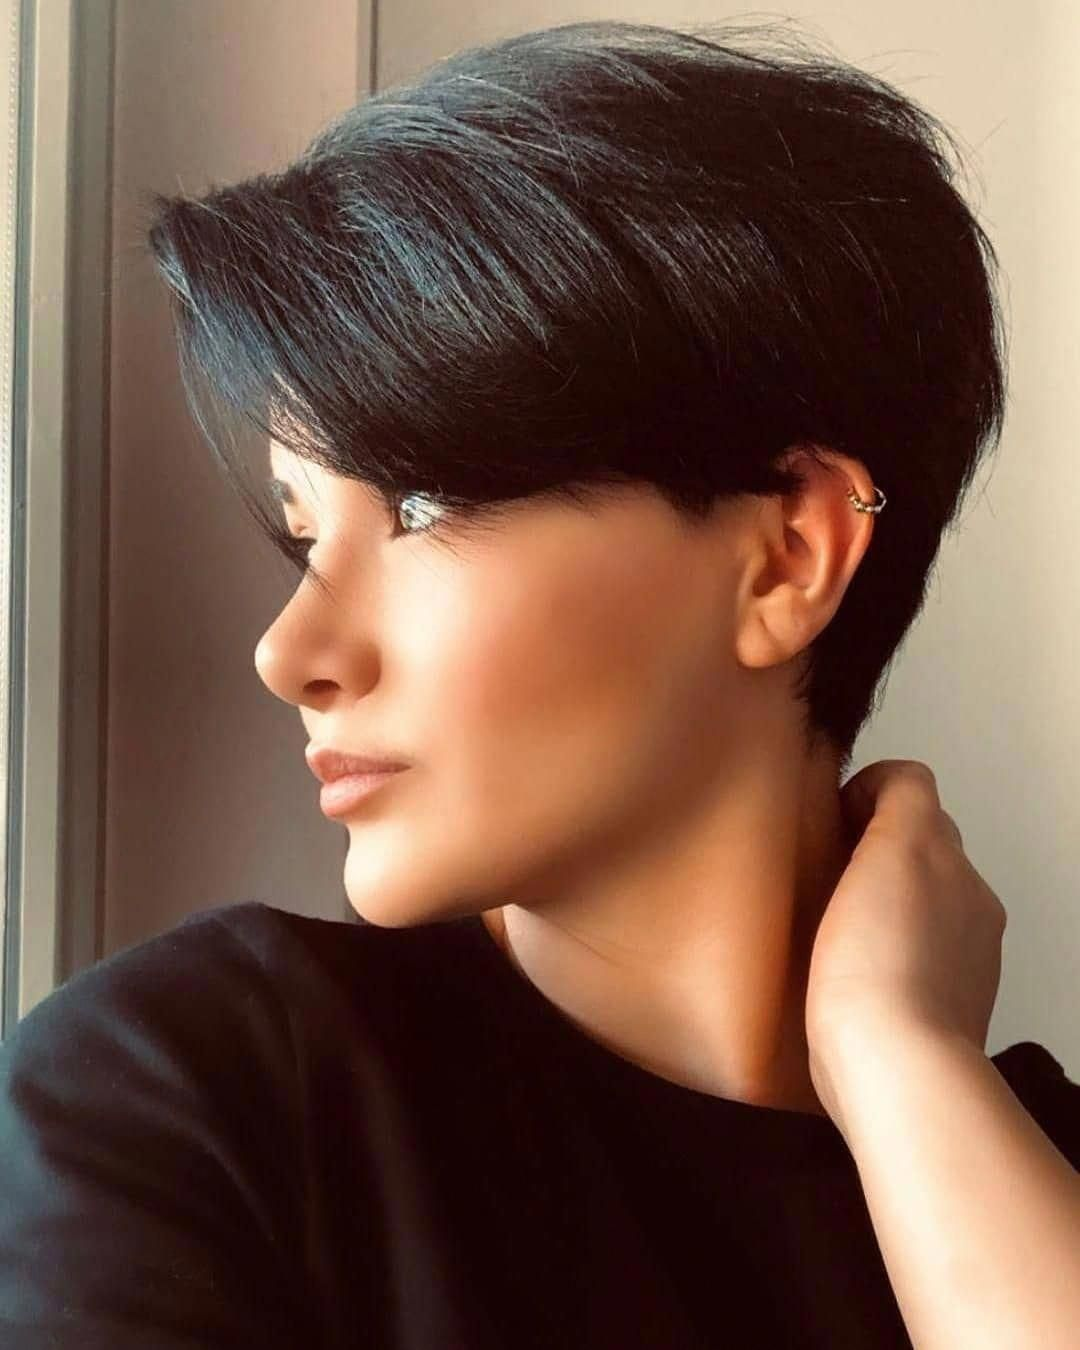 Pin Na Doske Short Hairstyles For Women